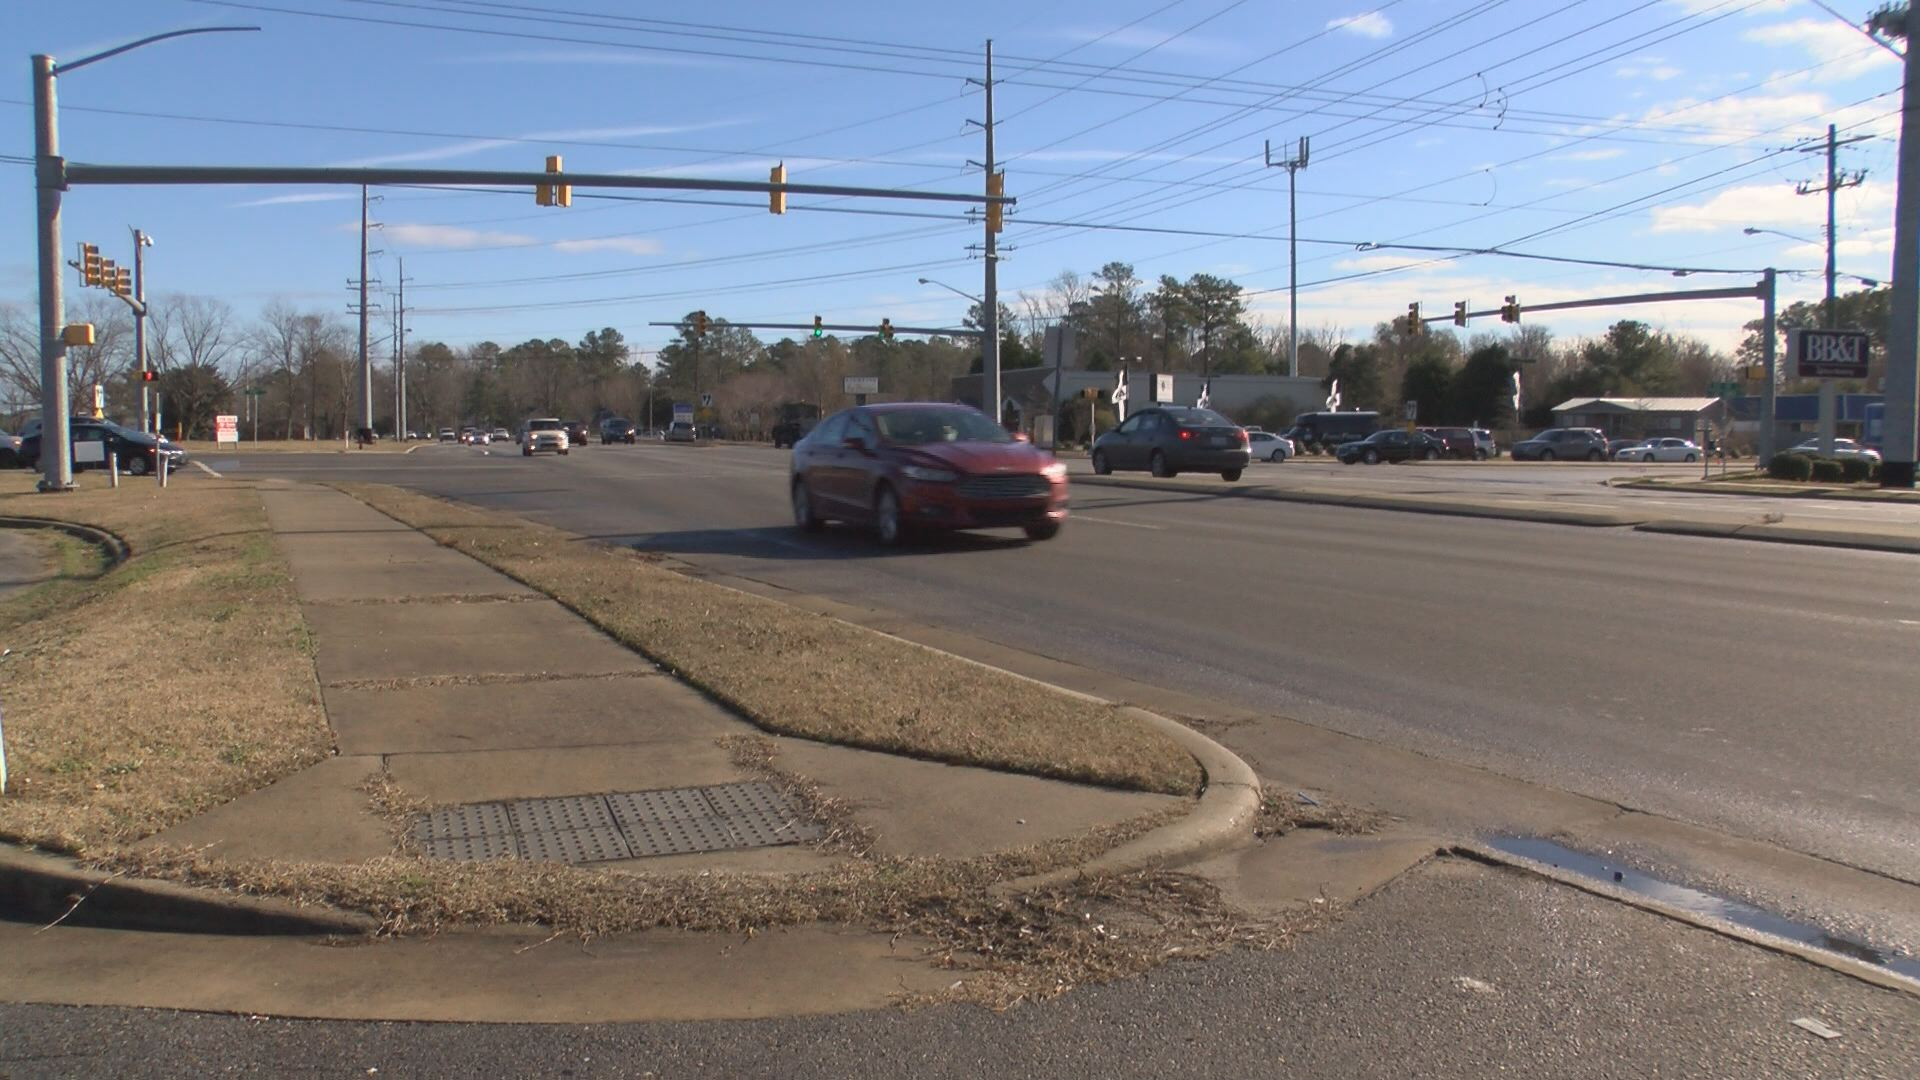 evans-st-widening-intersections_347094